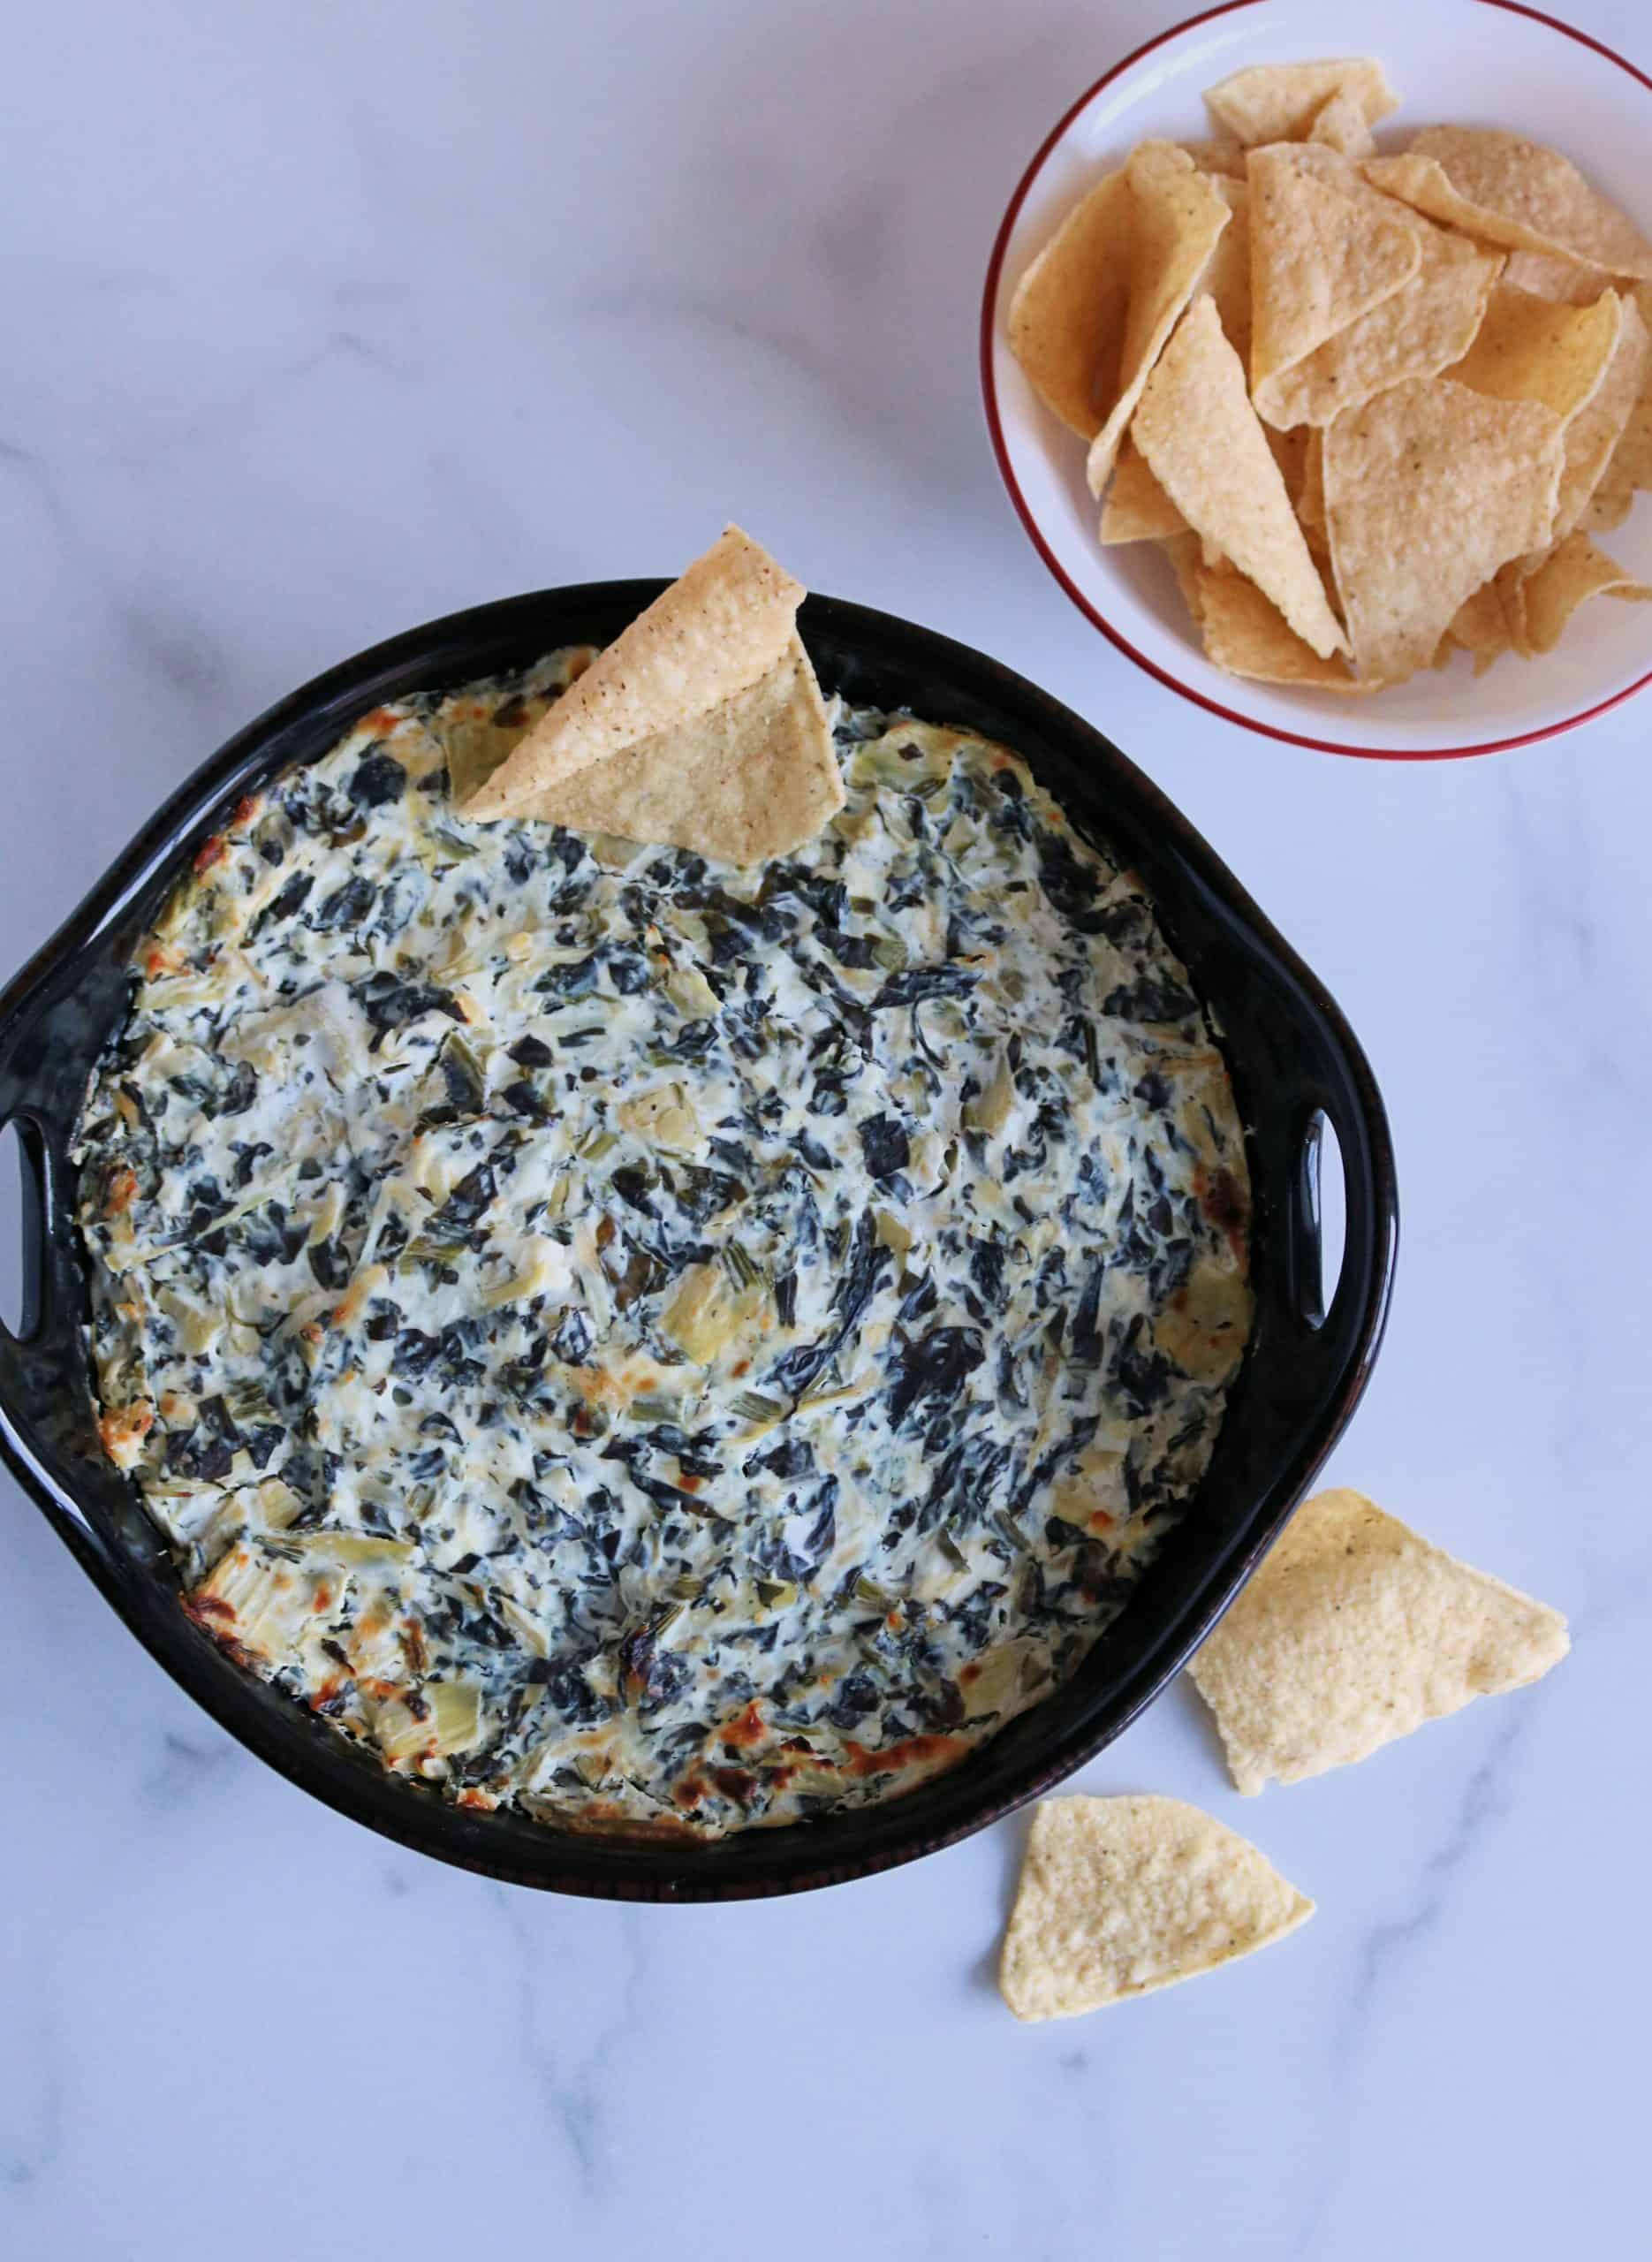 This easy Skinny Spinach Artichoke Dip is low calorie and will quickly become your new favorite party dip or game day appetizer! It's lightened up with cream cheese and Greek yogurt and loaded with healthy spinach, artichokes, three cheeses, and the delicious flavors of garlic and lemon. #spinachartichokedip #appetizer #dip #healthydip #cheesedip #superbowlrecipe